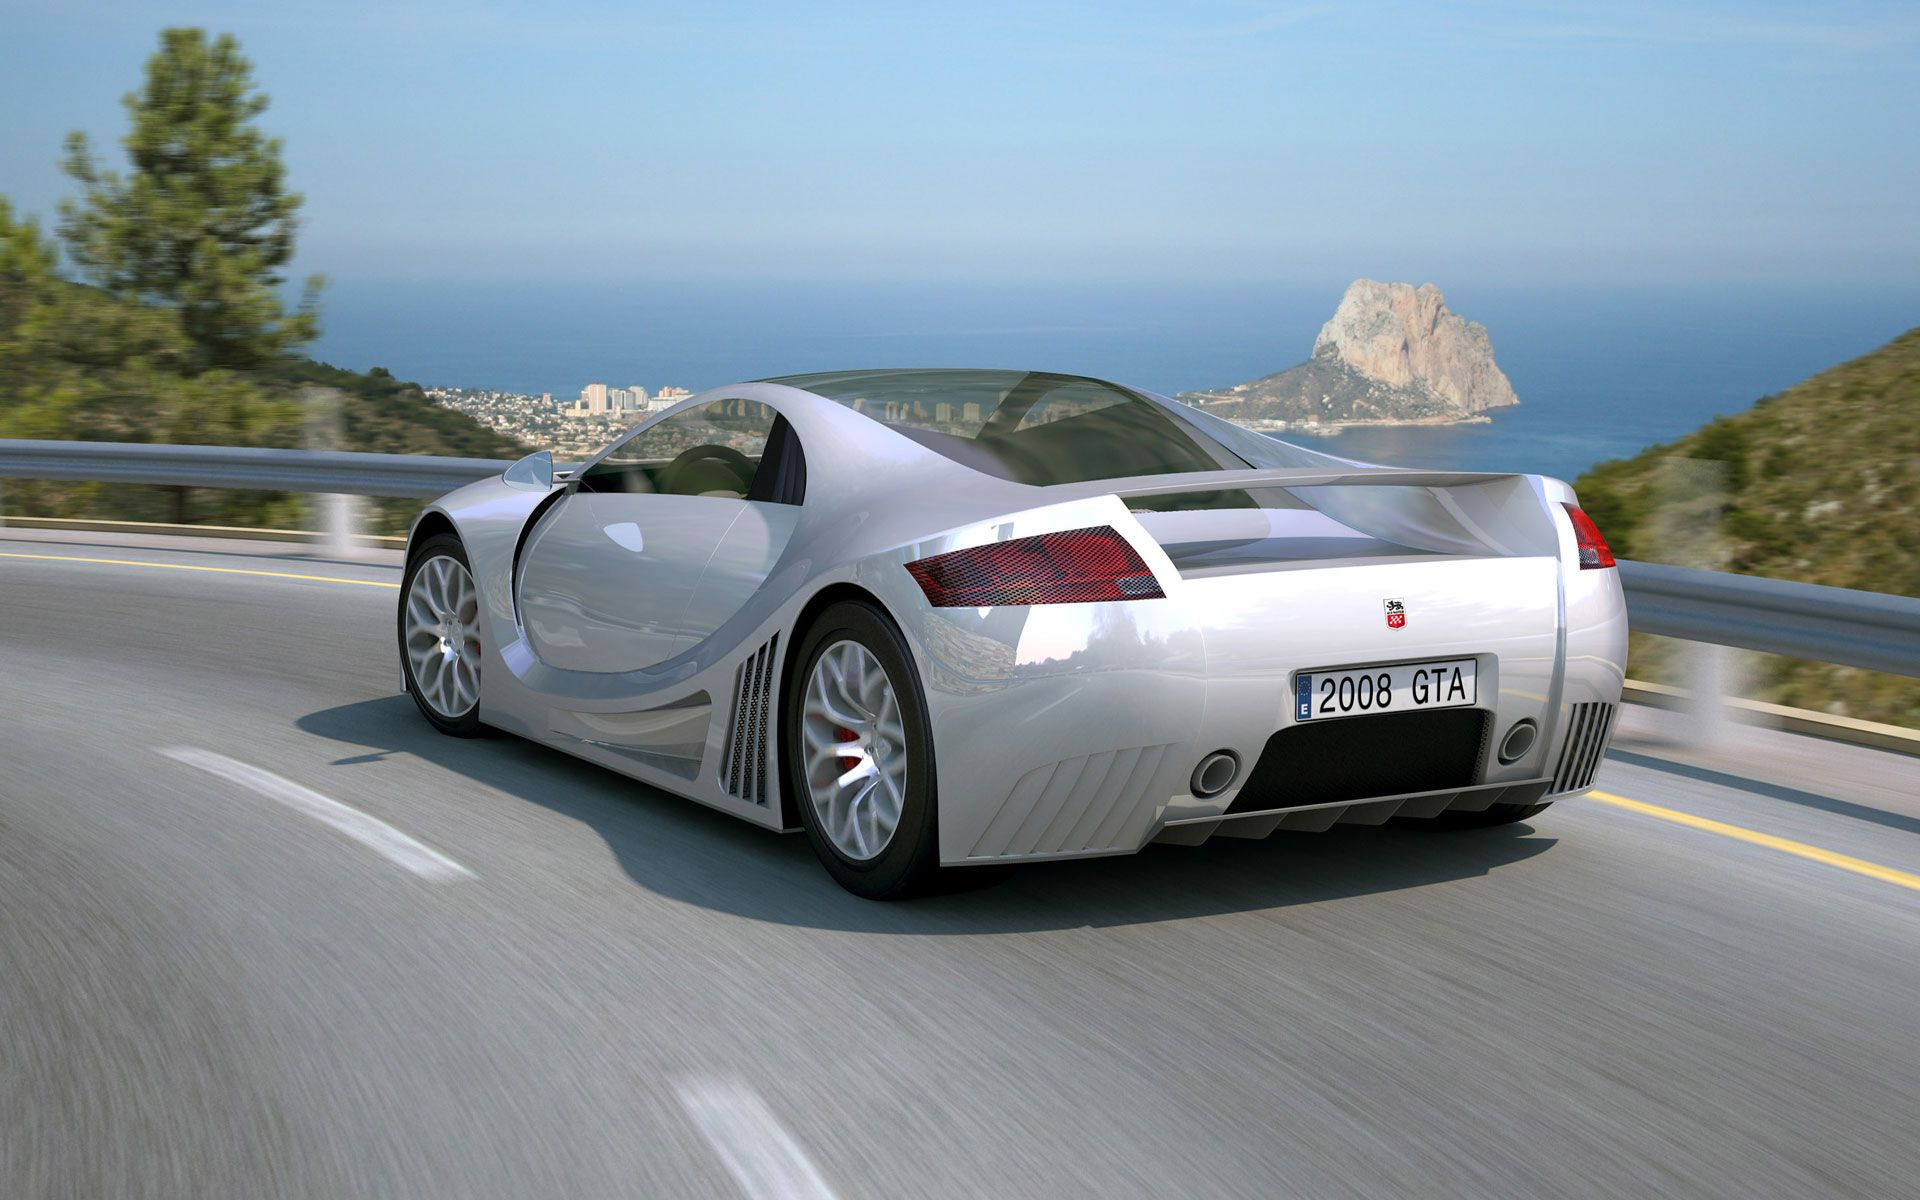 Gta Concept Super Sport Car 2 Wide Jpg 1920 1200 With Images Super Sport Cars Car Sports Car Wallpaper